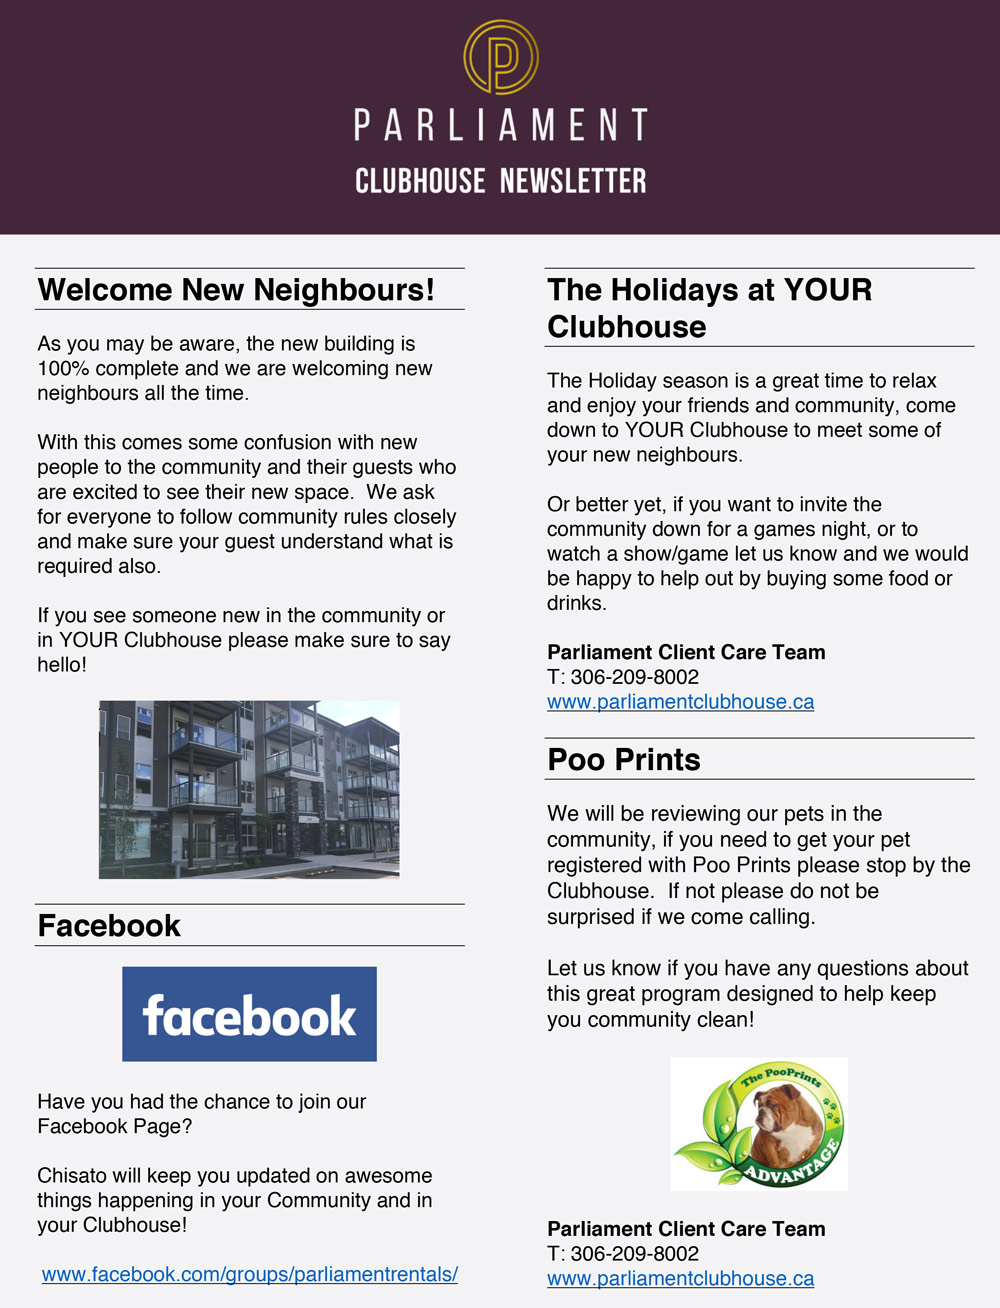 Microsoft-Word---Clubhouse-Newsletter-Pg2.docx-2.jpg